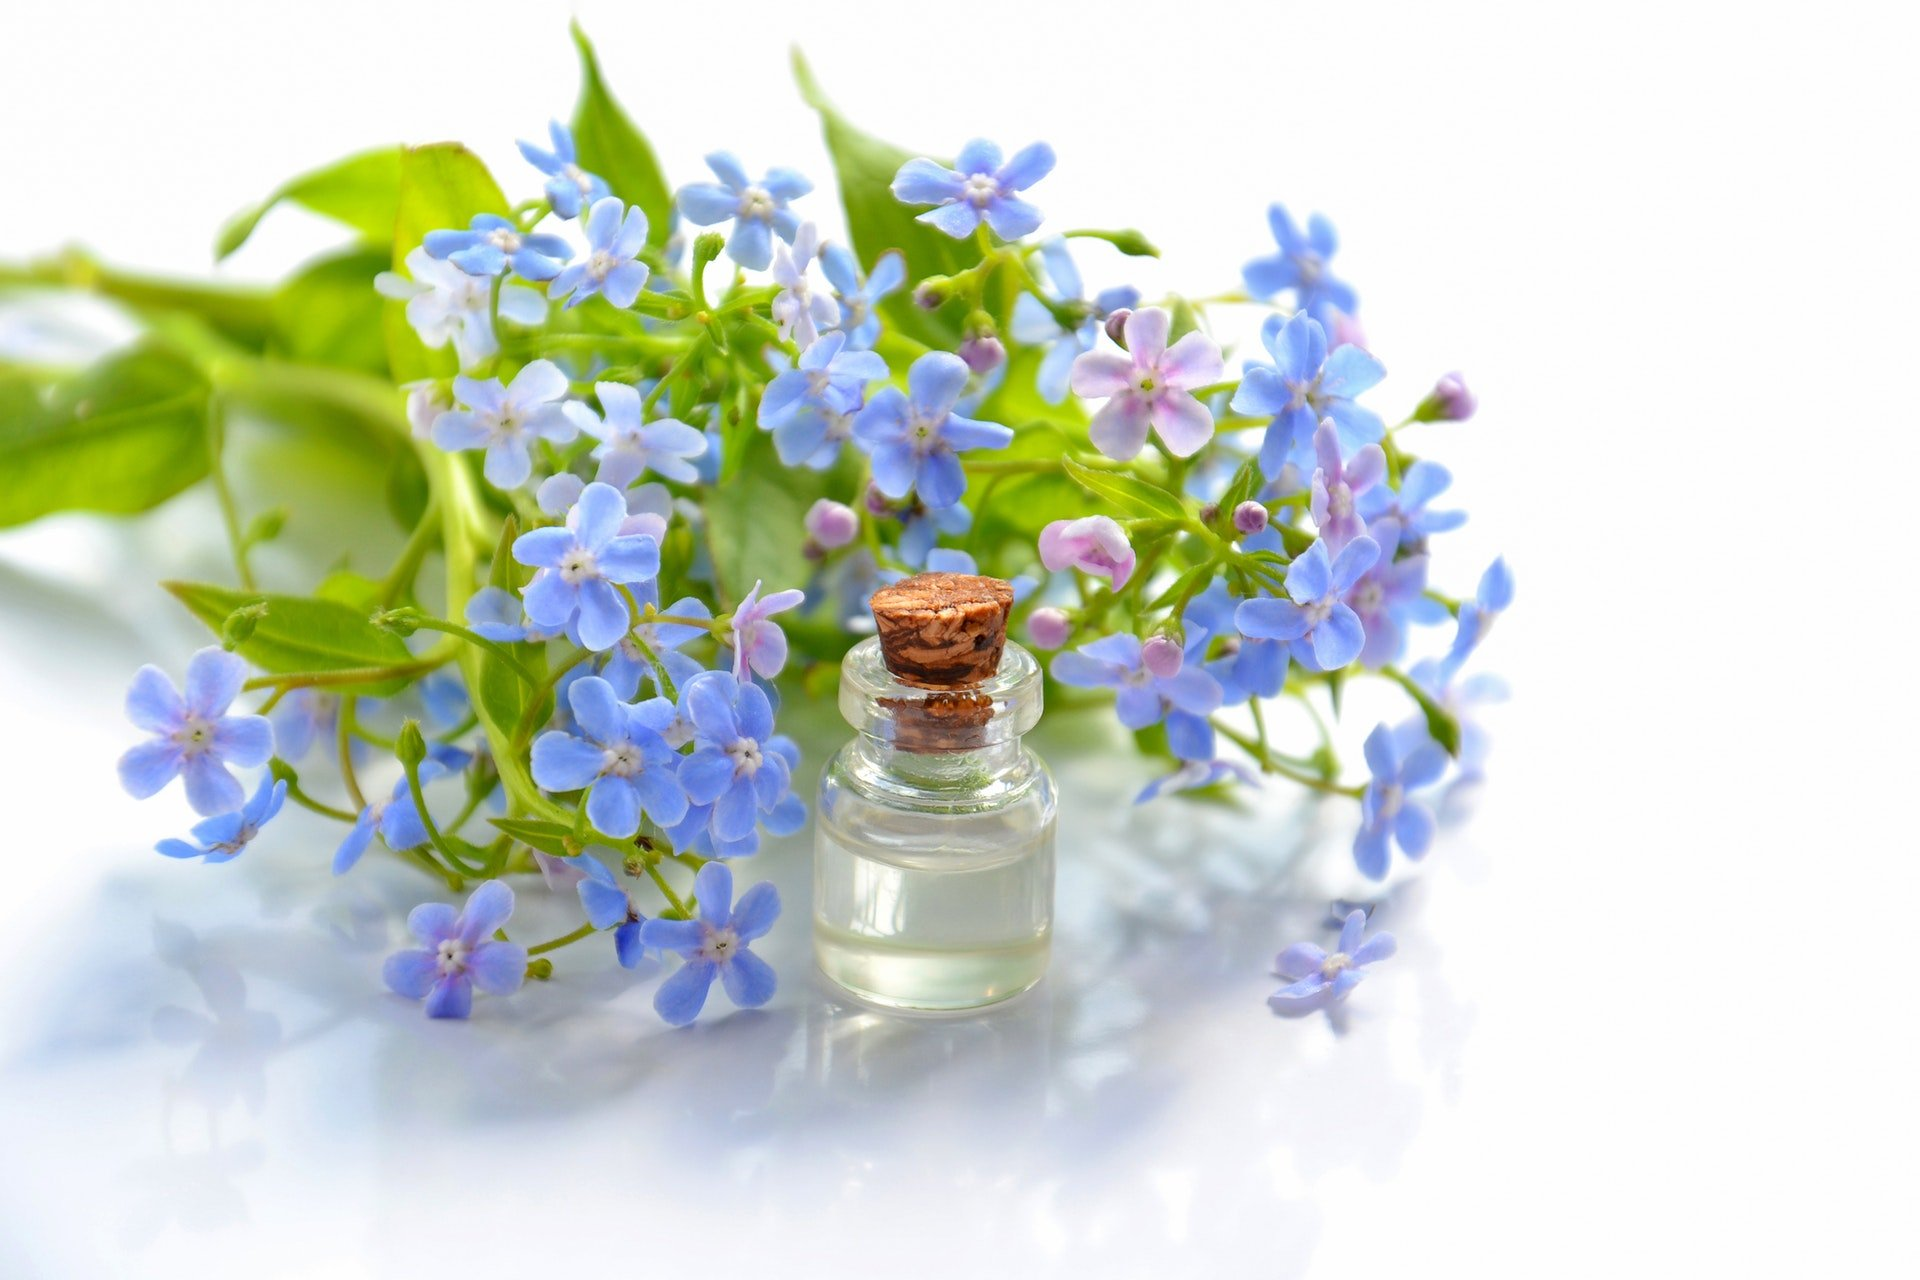 flowers and phial containing essential oil